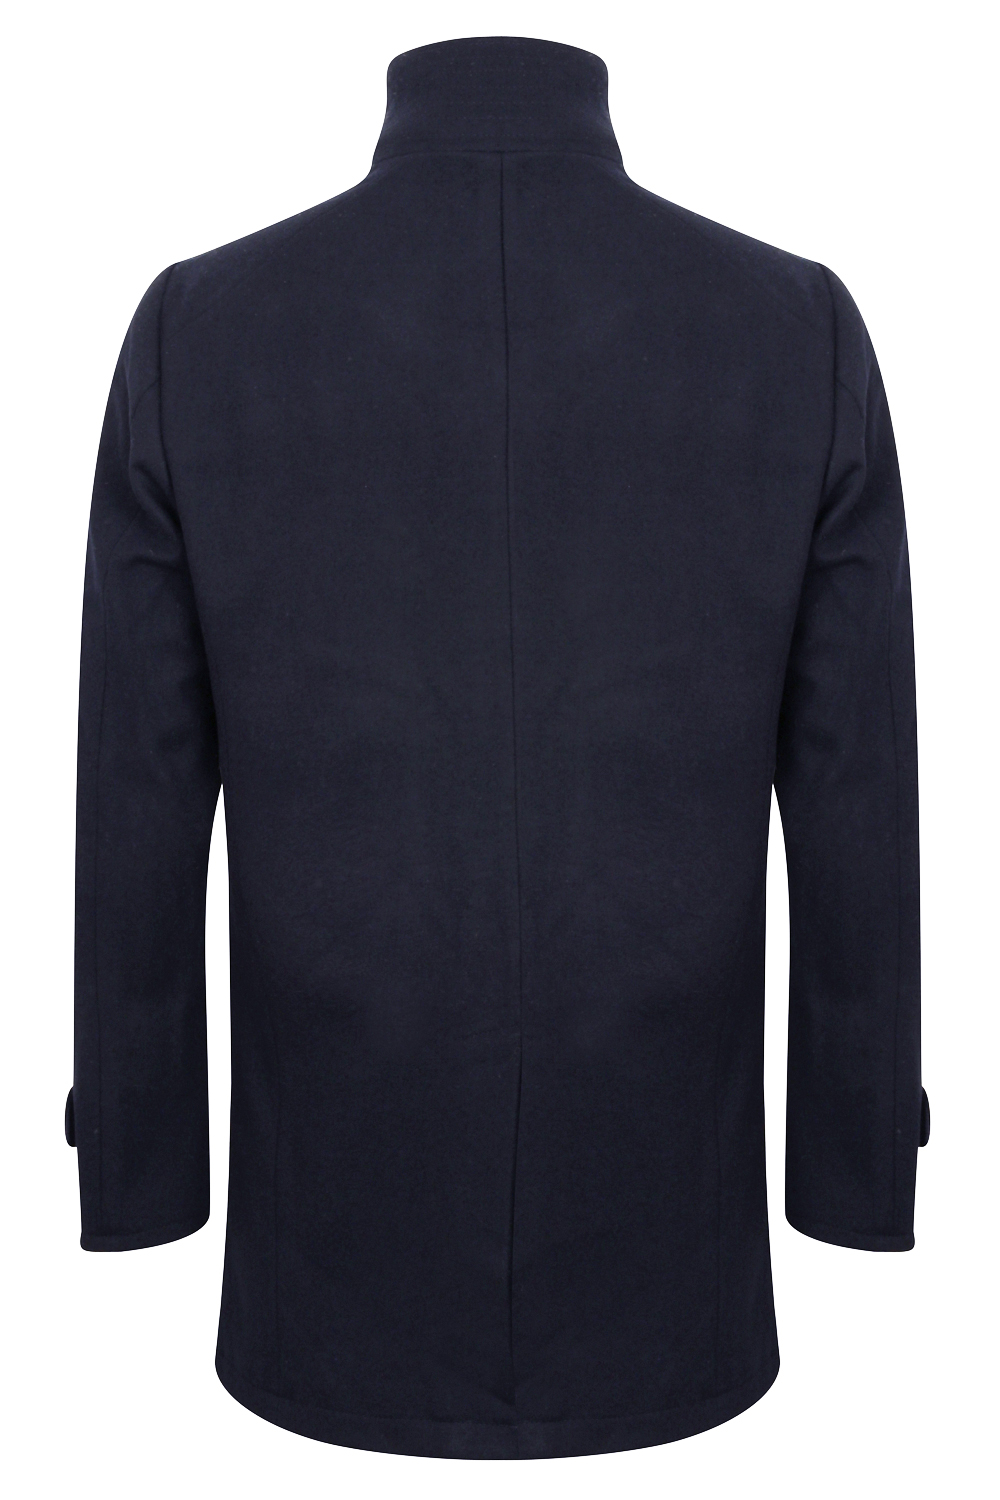 Tokyo-Laundry-Mens-Ackroyd-Smart-Wool-Coat-Funnel-Neck-Zip-Up-Collared-Jacket thumbnail 3